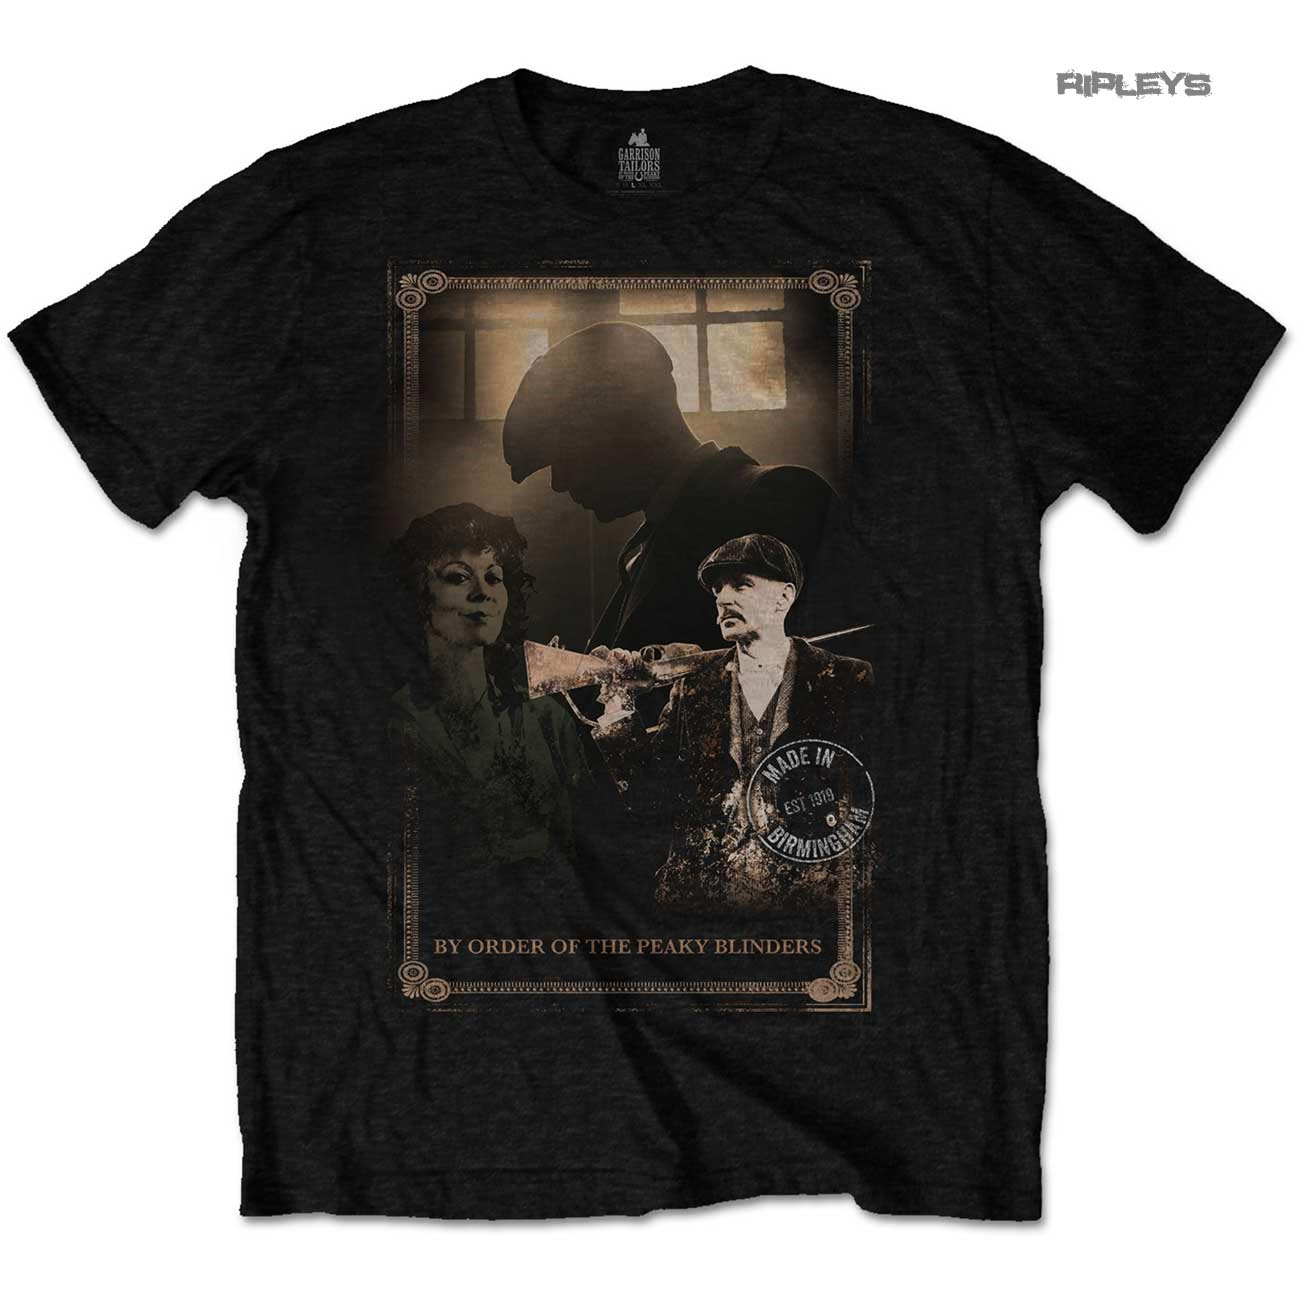 Official-T-Shirt-PEAKY-BLINDERS-Shelby-Brothers-039-Shotgun-039-Black-All-Sizes thumbnail 8